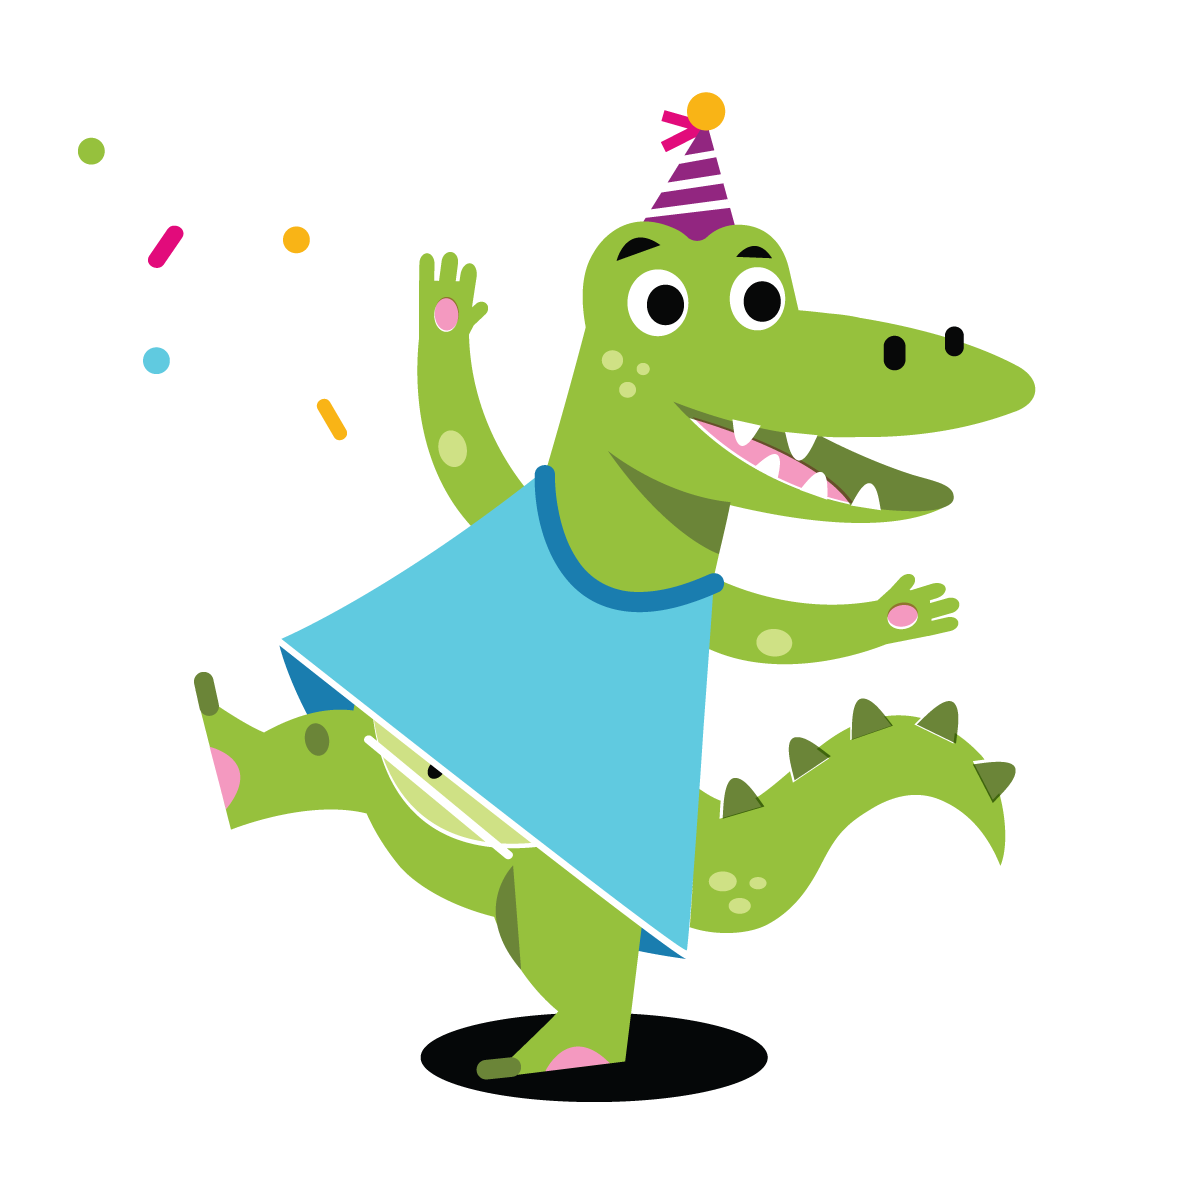 Partying Aligator - Vector Illustration © Emeline Barrea, All rights reserved